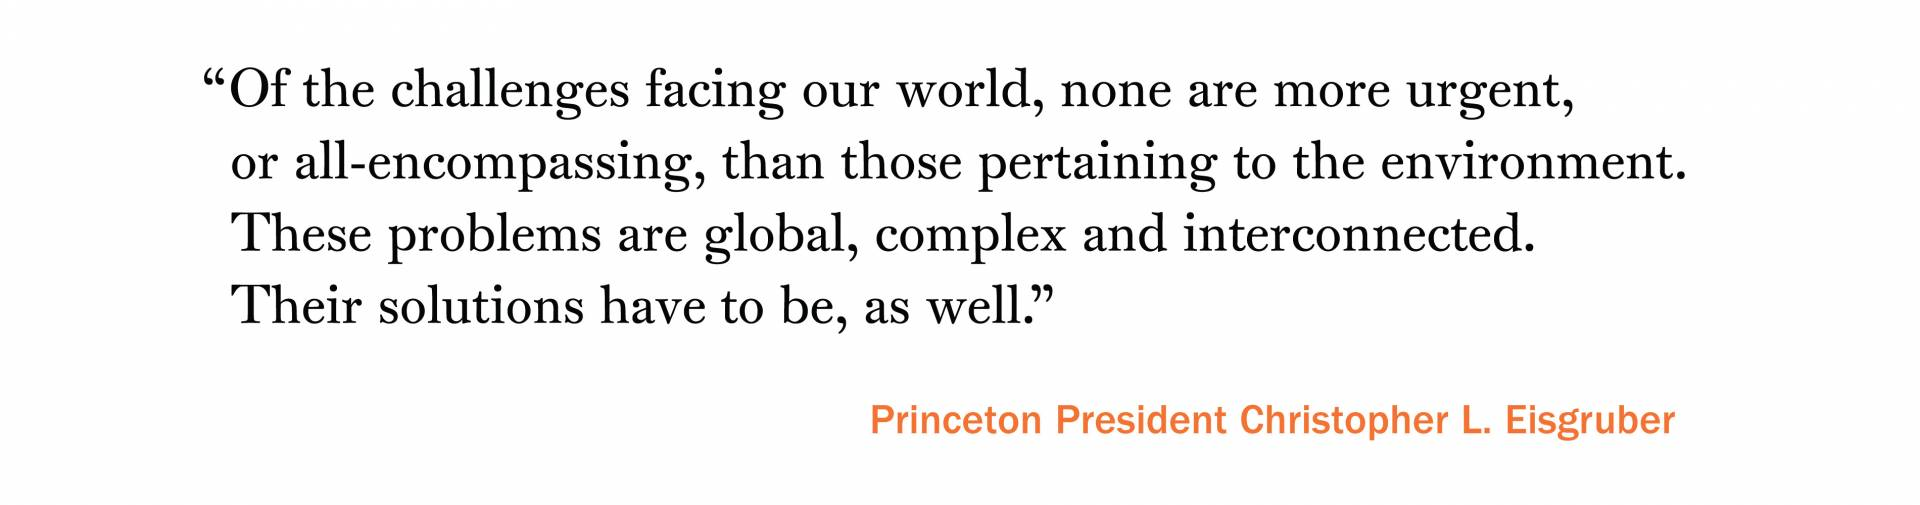 """Of the challenges facing our world, none are more urgent, or all-encompassing, than those pertaining to the environment. These problems are global, complex and interconnected. Their solutions have to be, as well."" –Princeton President Christopher L. Eisgruber"